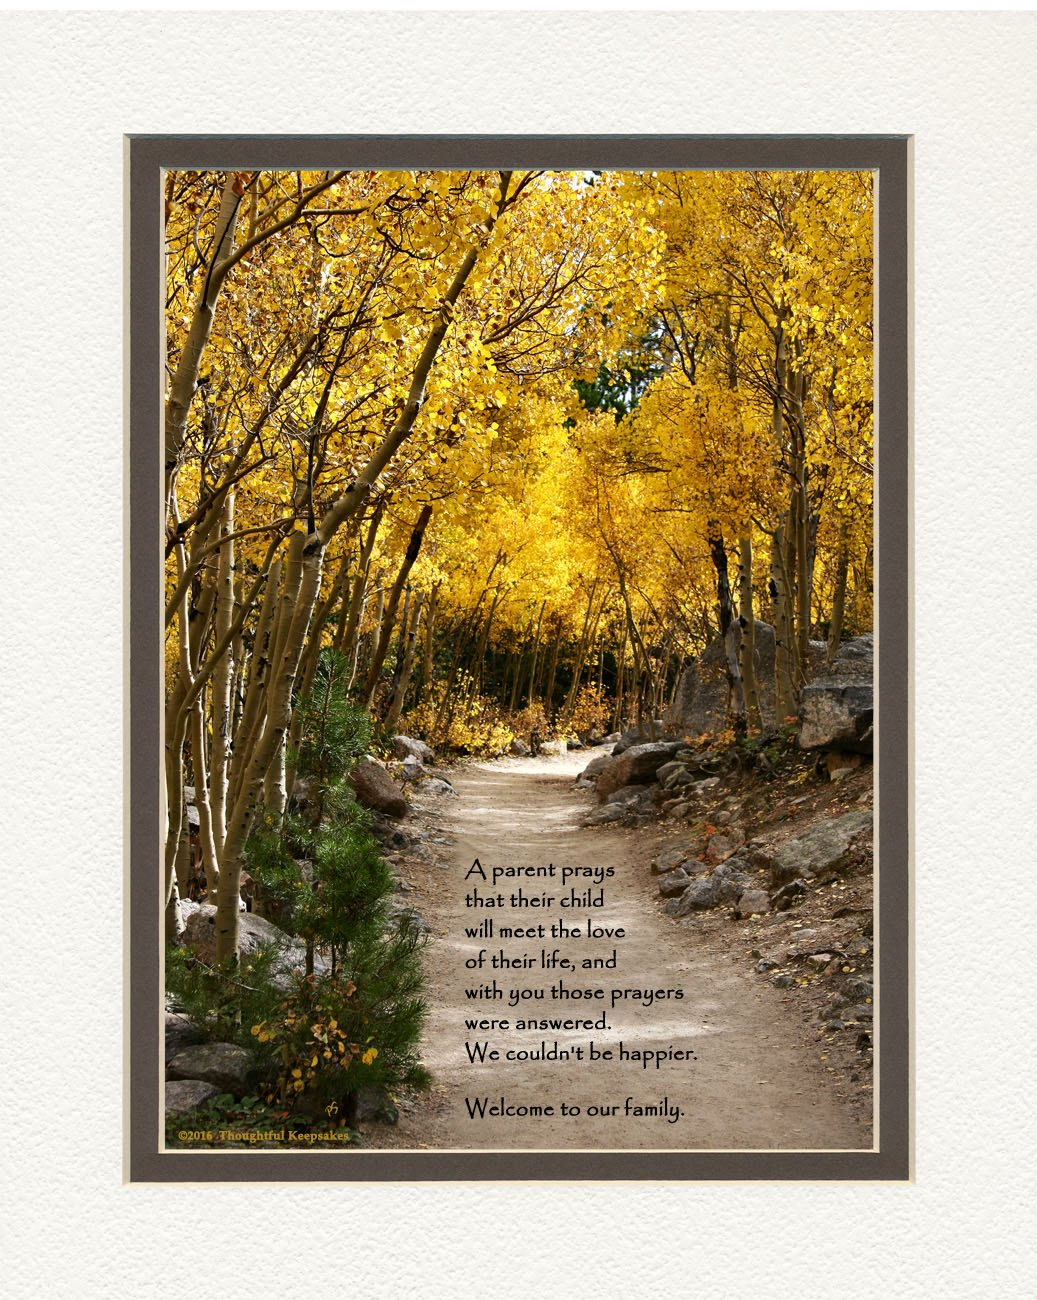 Son-in-law or Daughter-in-law Gift with Welcome to the Family Poem, Special Wedding Gift, Christmas or Birthday Gifts, Aspen Path Photo, 8x10 Double Matted